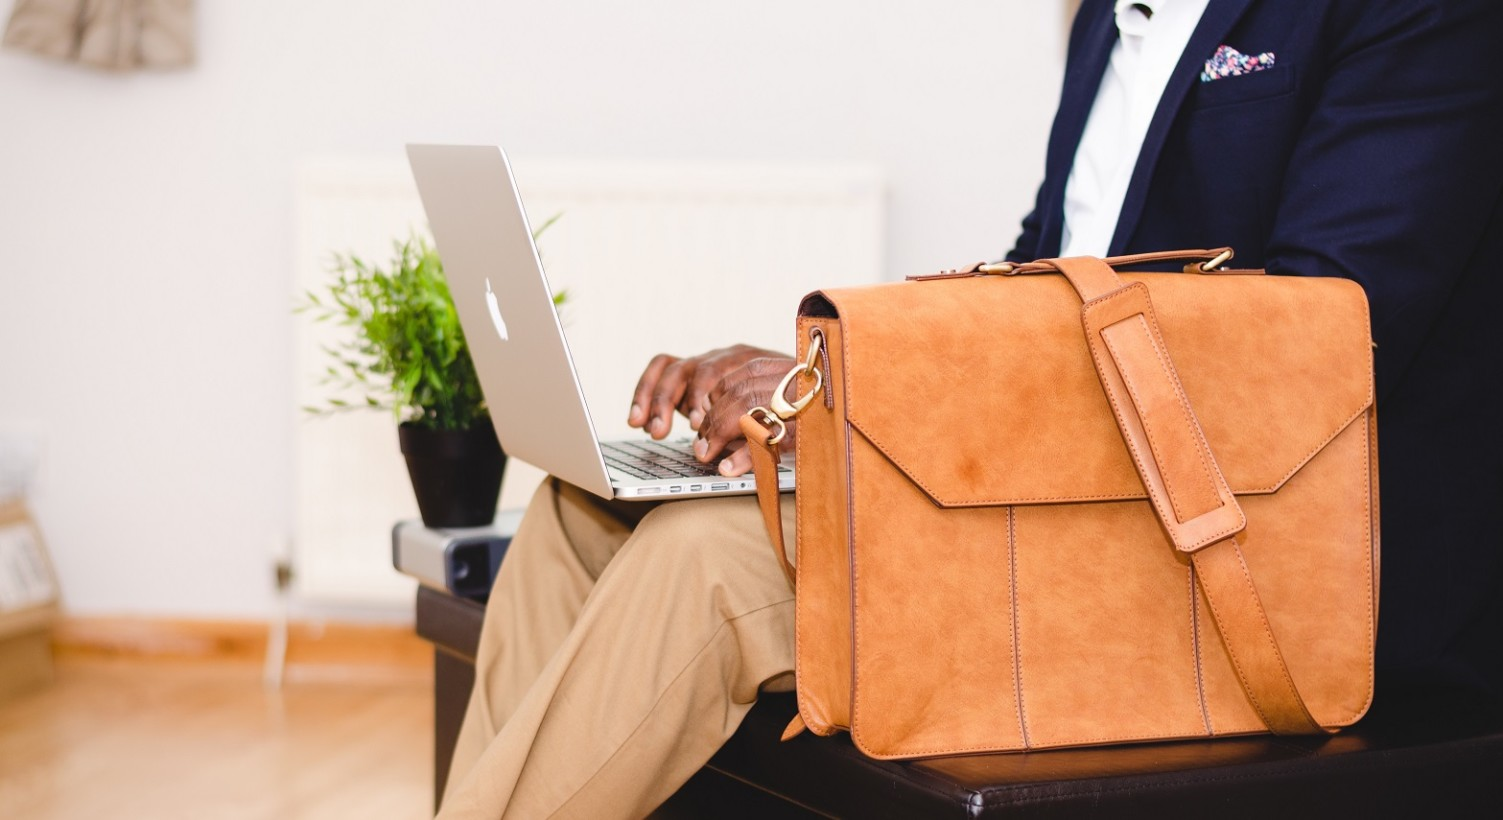 Starting your own business? One founder has some suggestions for you